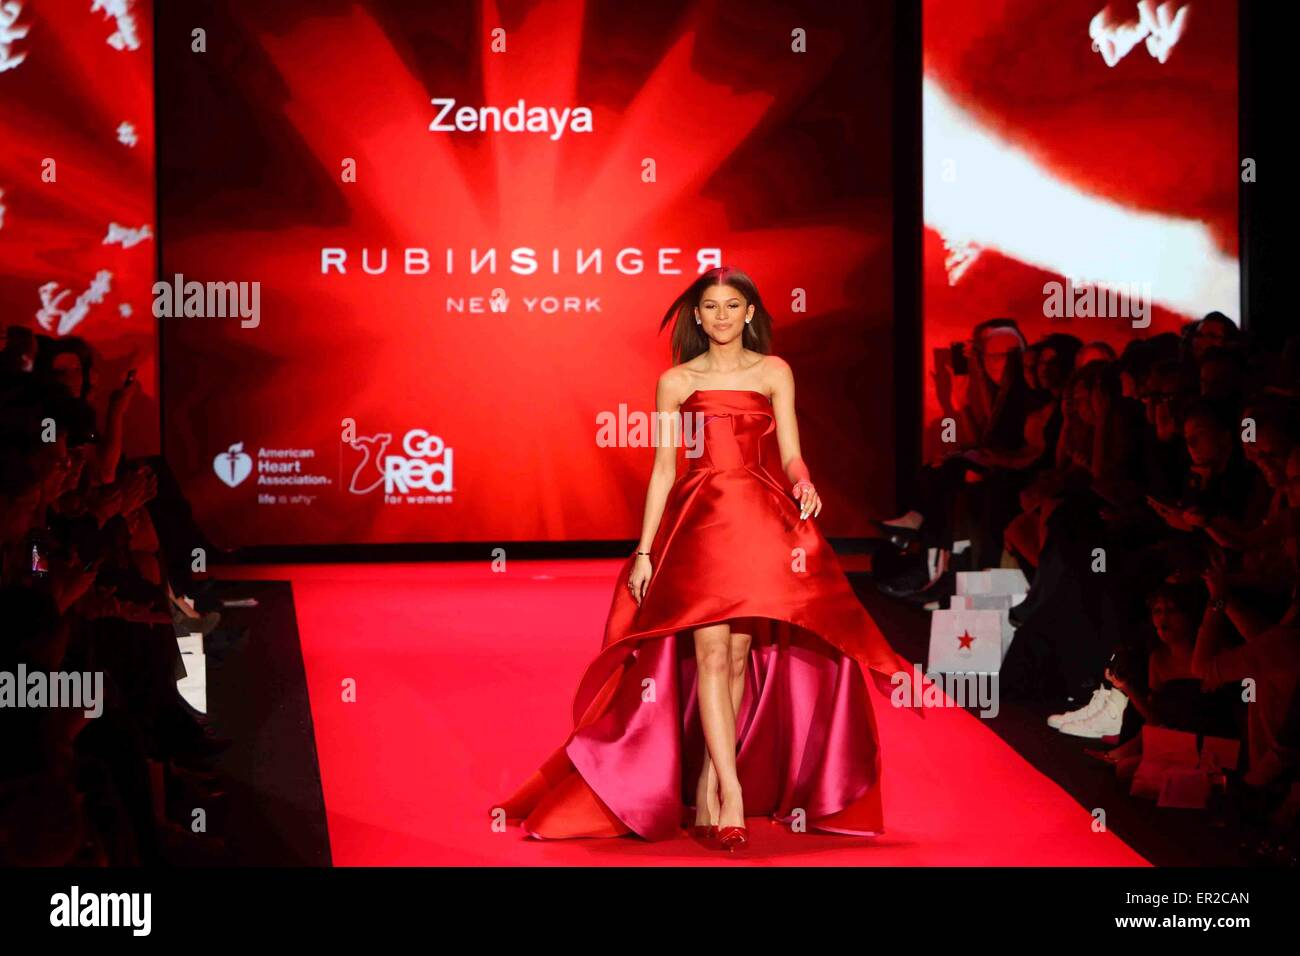 Zendaya wears Rubinsinger at Go Red for Women-The Heart Truth Red Dress Collection at Mercedes-Benz Fashion Week. - Stock Image